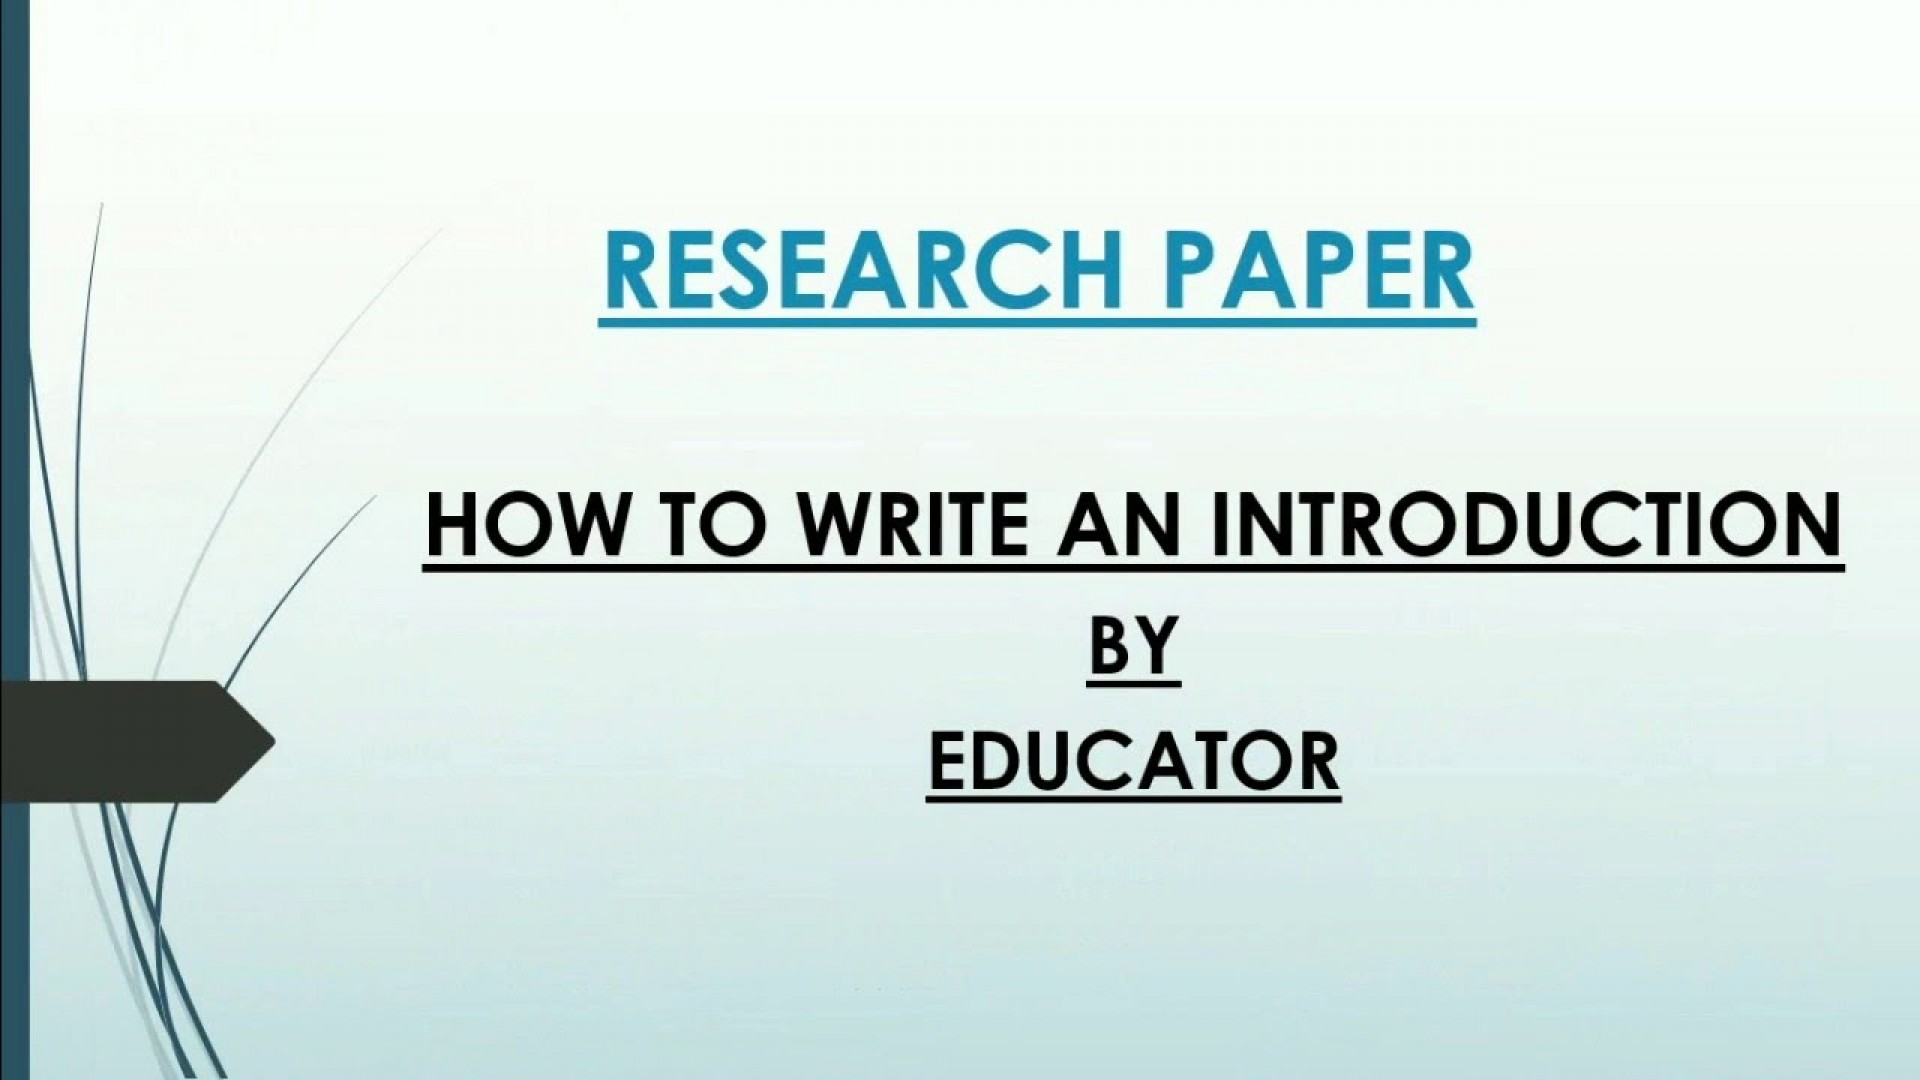 008 Research Paper How To Start Introduction Unbelievable Your Paragraph On A Write Examples 1920